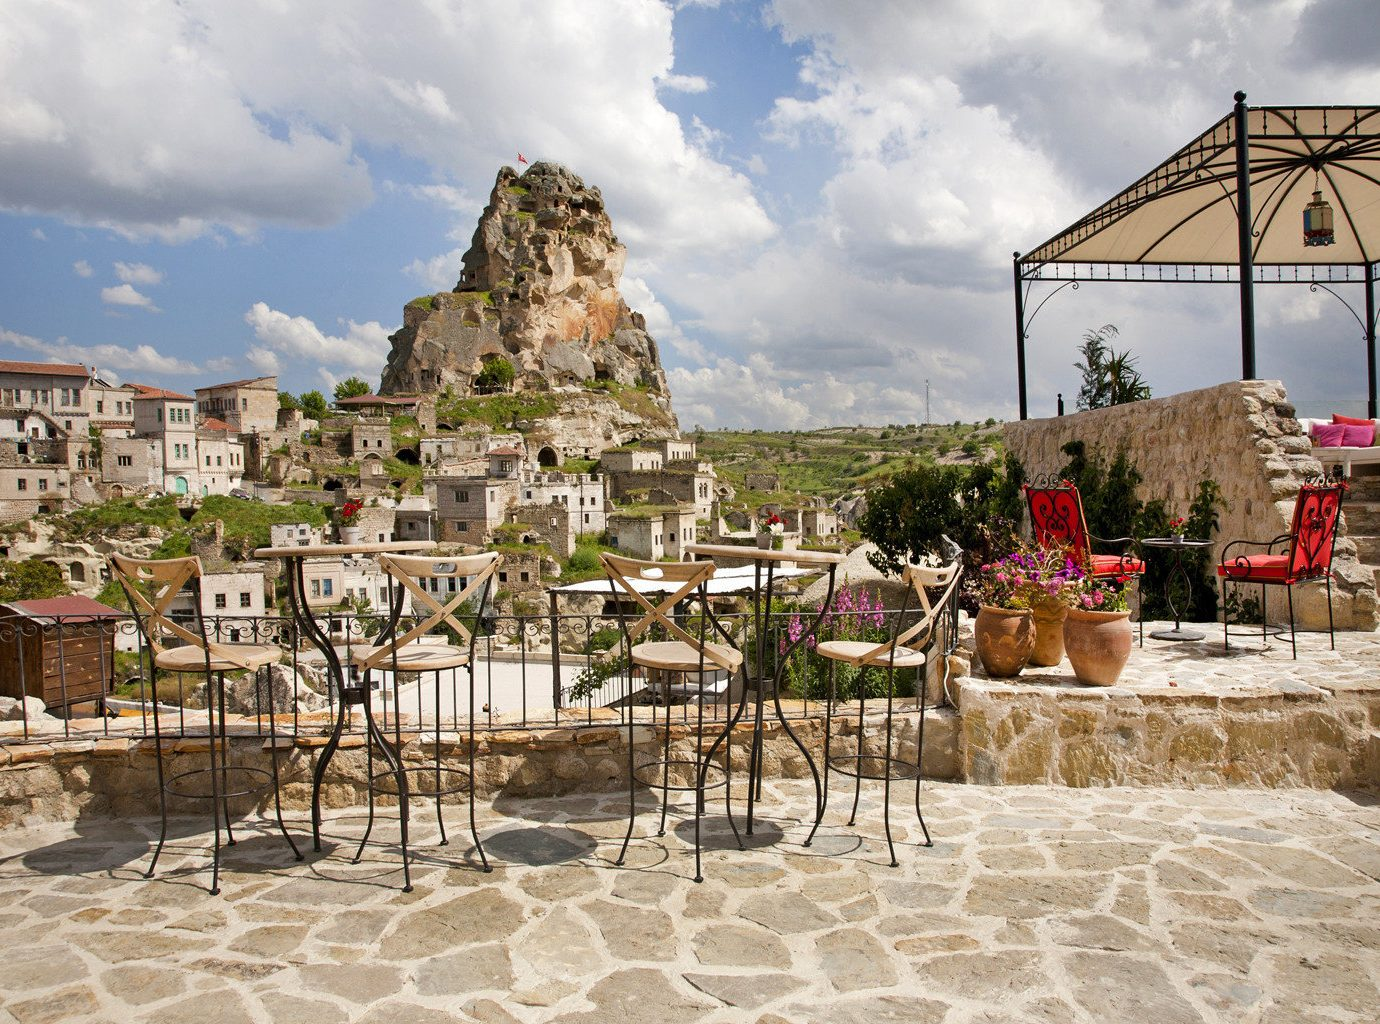 Courtyard Dining Drink Eat Lounge Patio Rustic Terrace sky Town ancient history Village Resort palace temple hindu temple travel flower